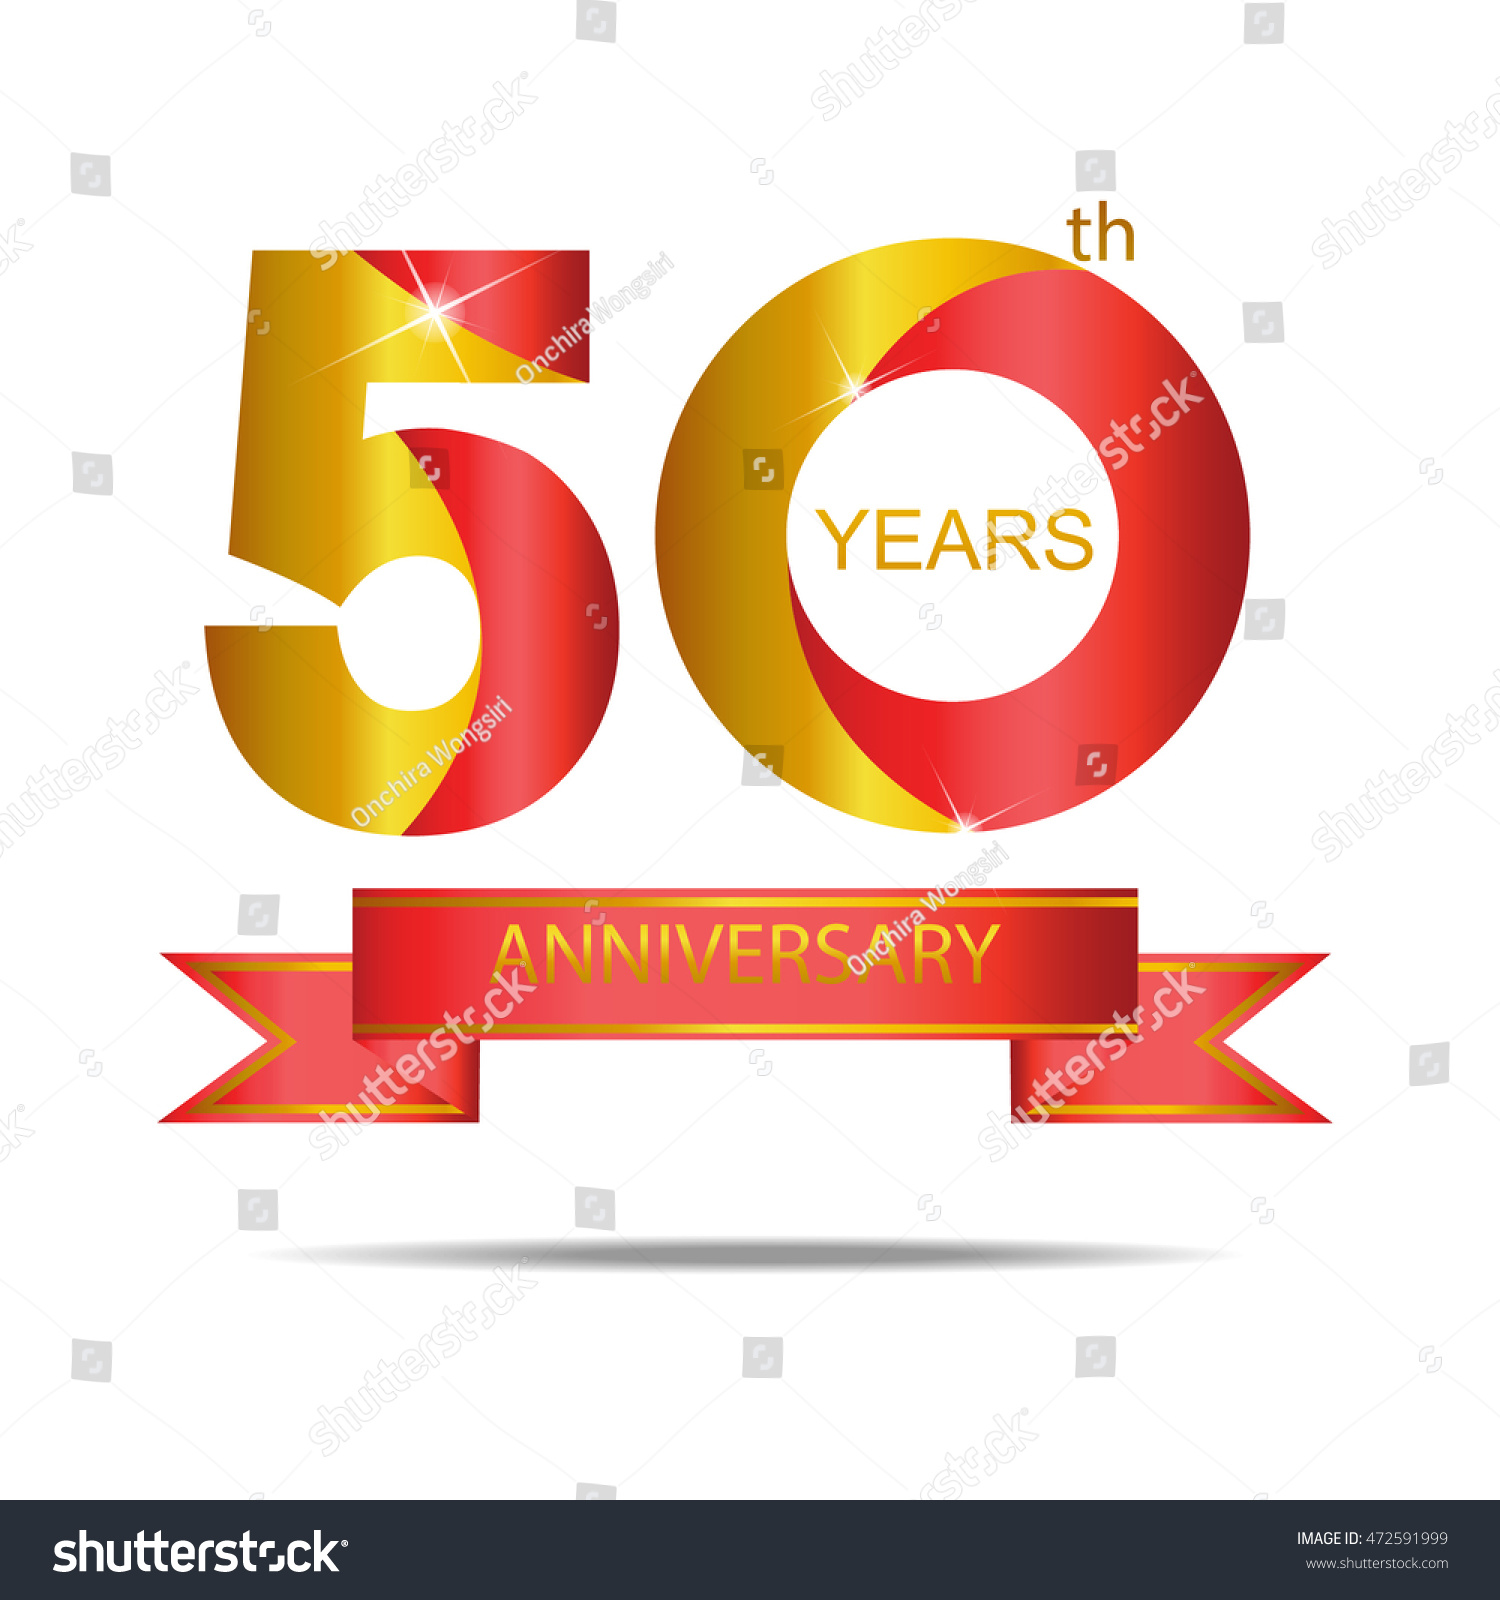 Template logo 50th anniversary red gold stock vector 472591999 template logo 50th anniversary with red and gold color 50 years anniversary logo 50 buycottarizona Choice Image